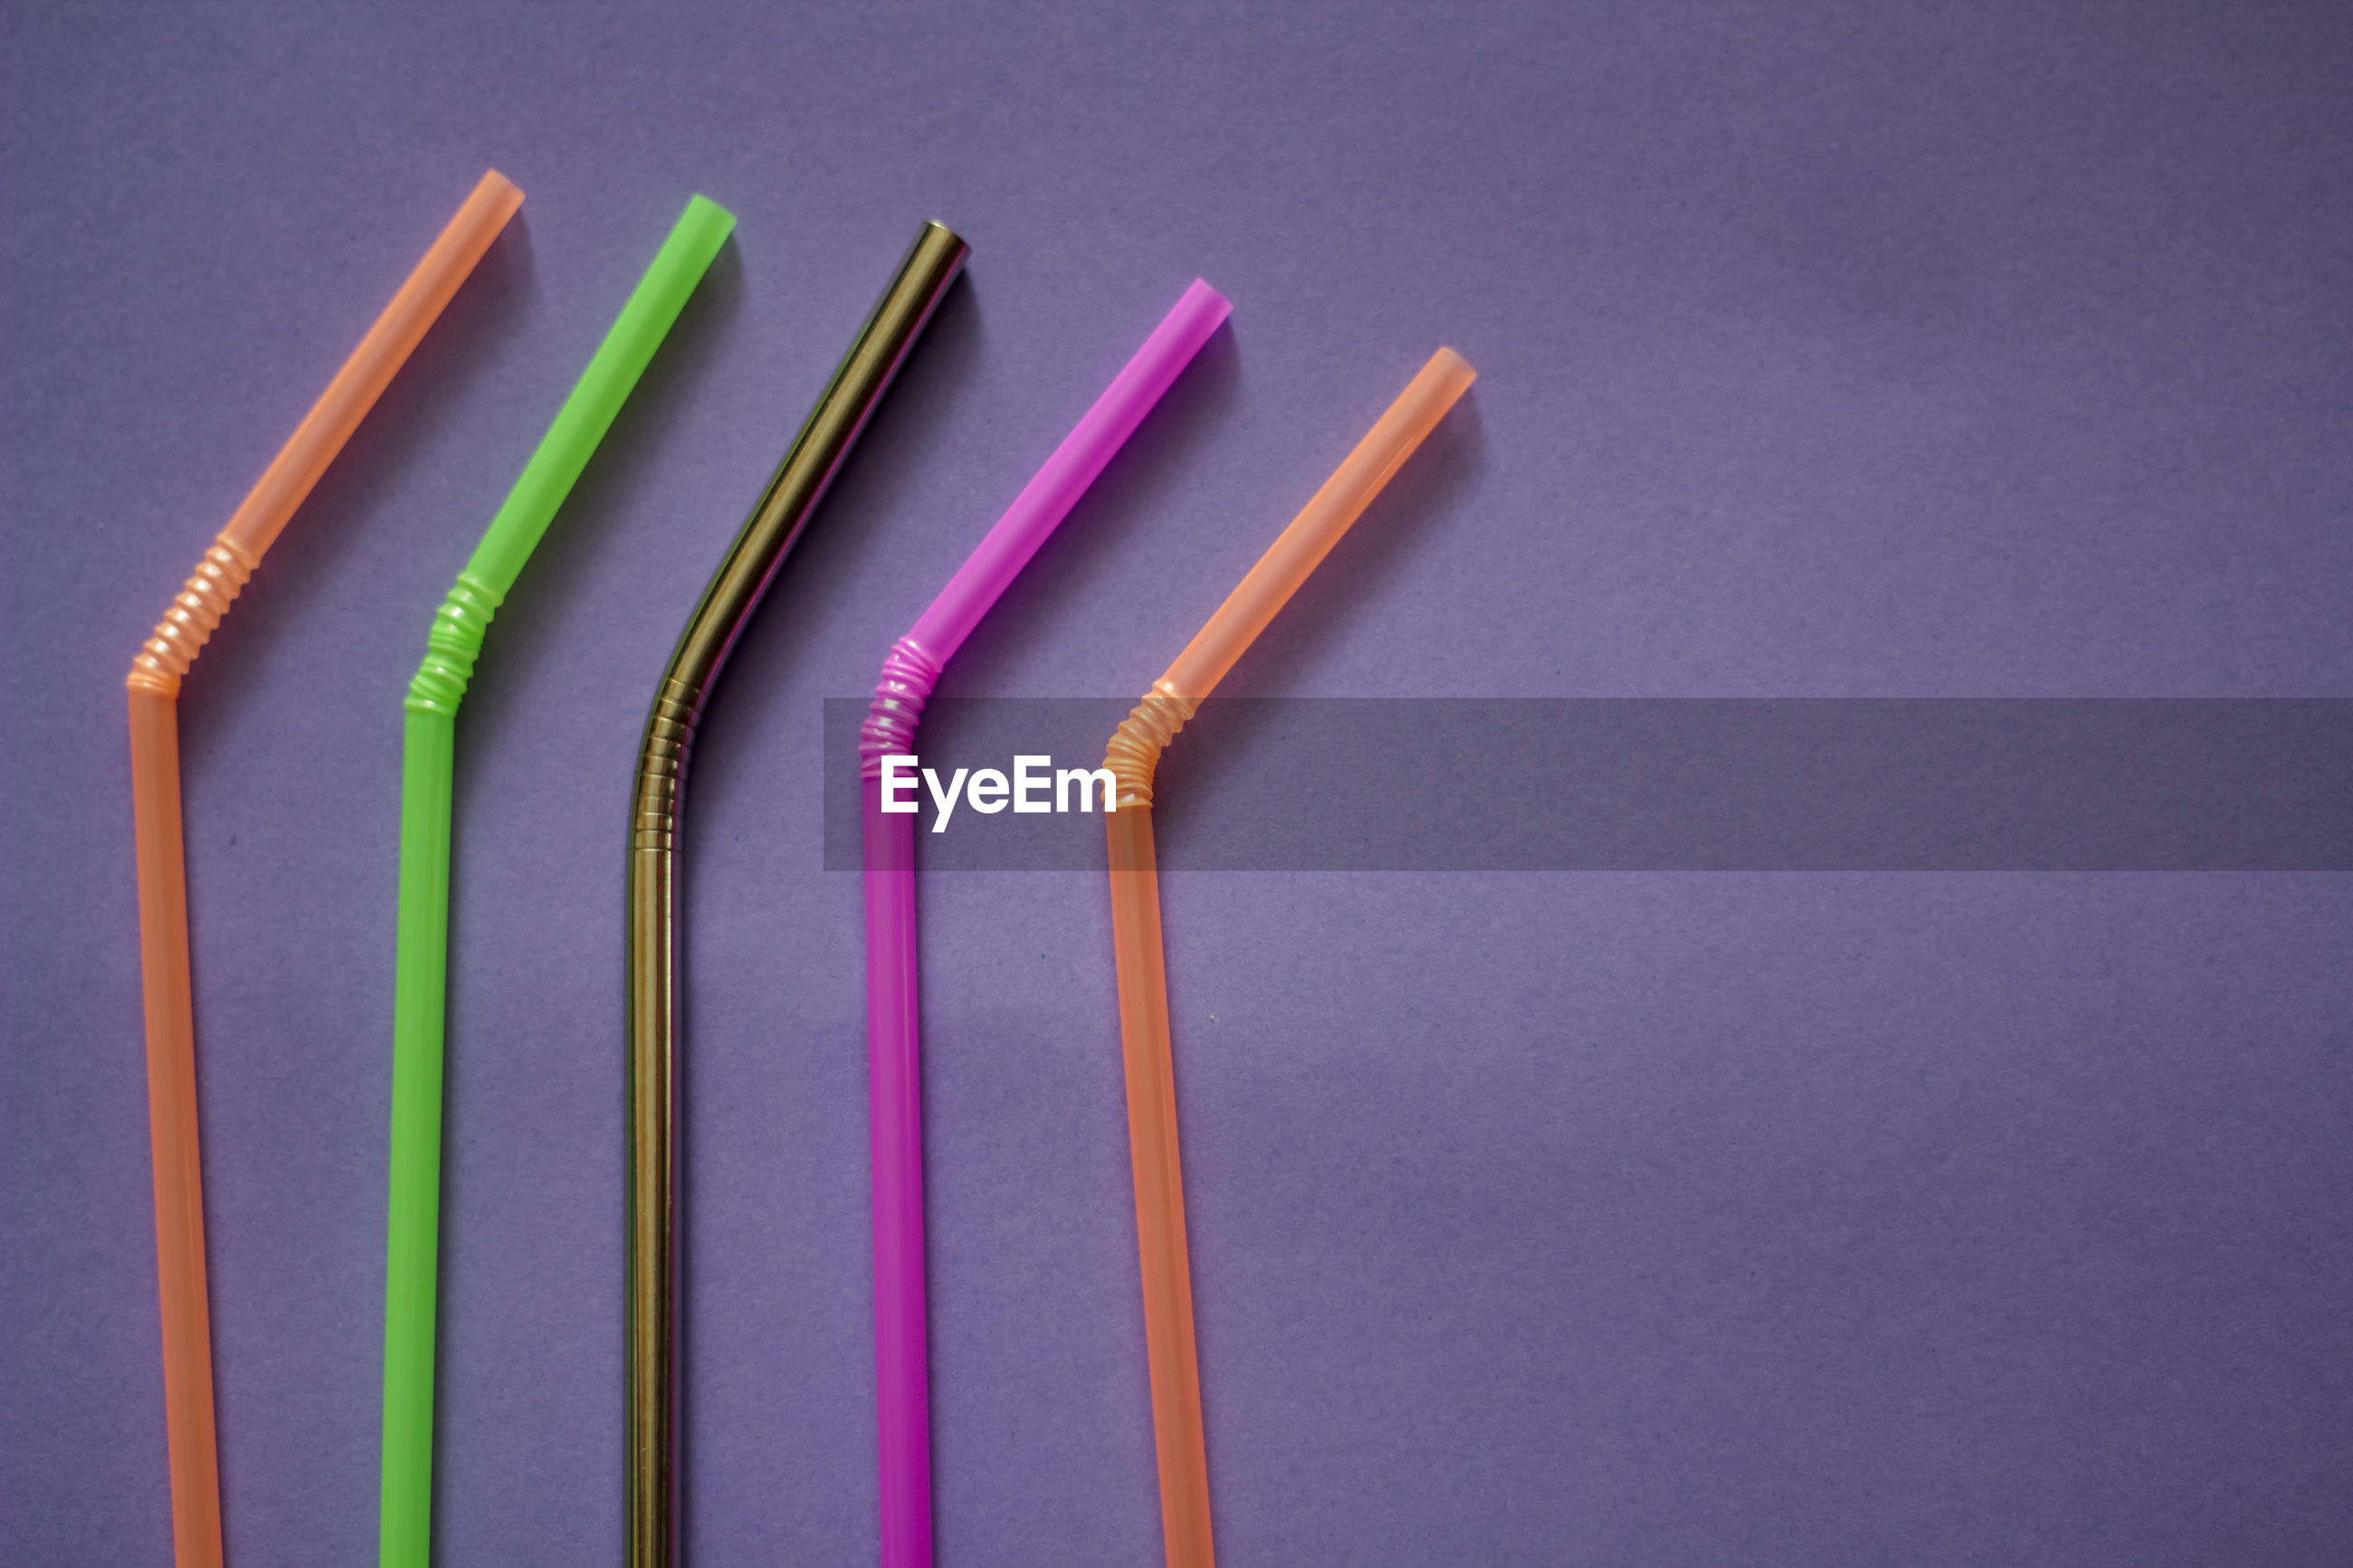 Close-up of colorful straws on purple background